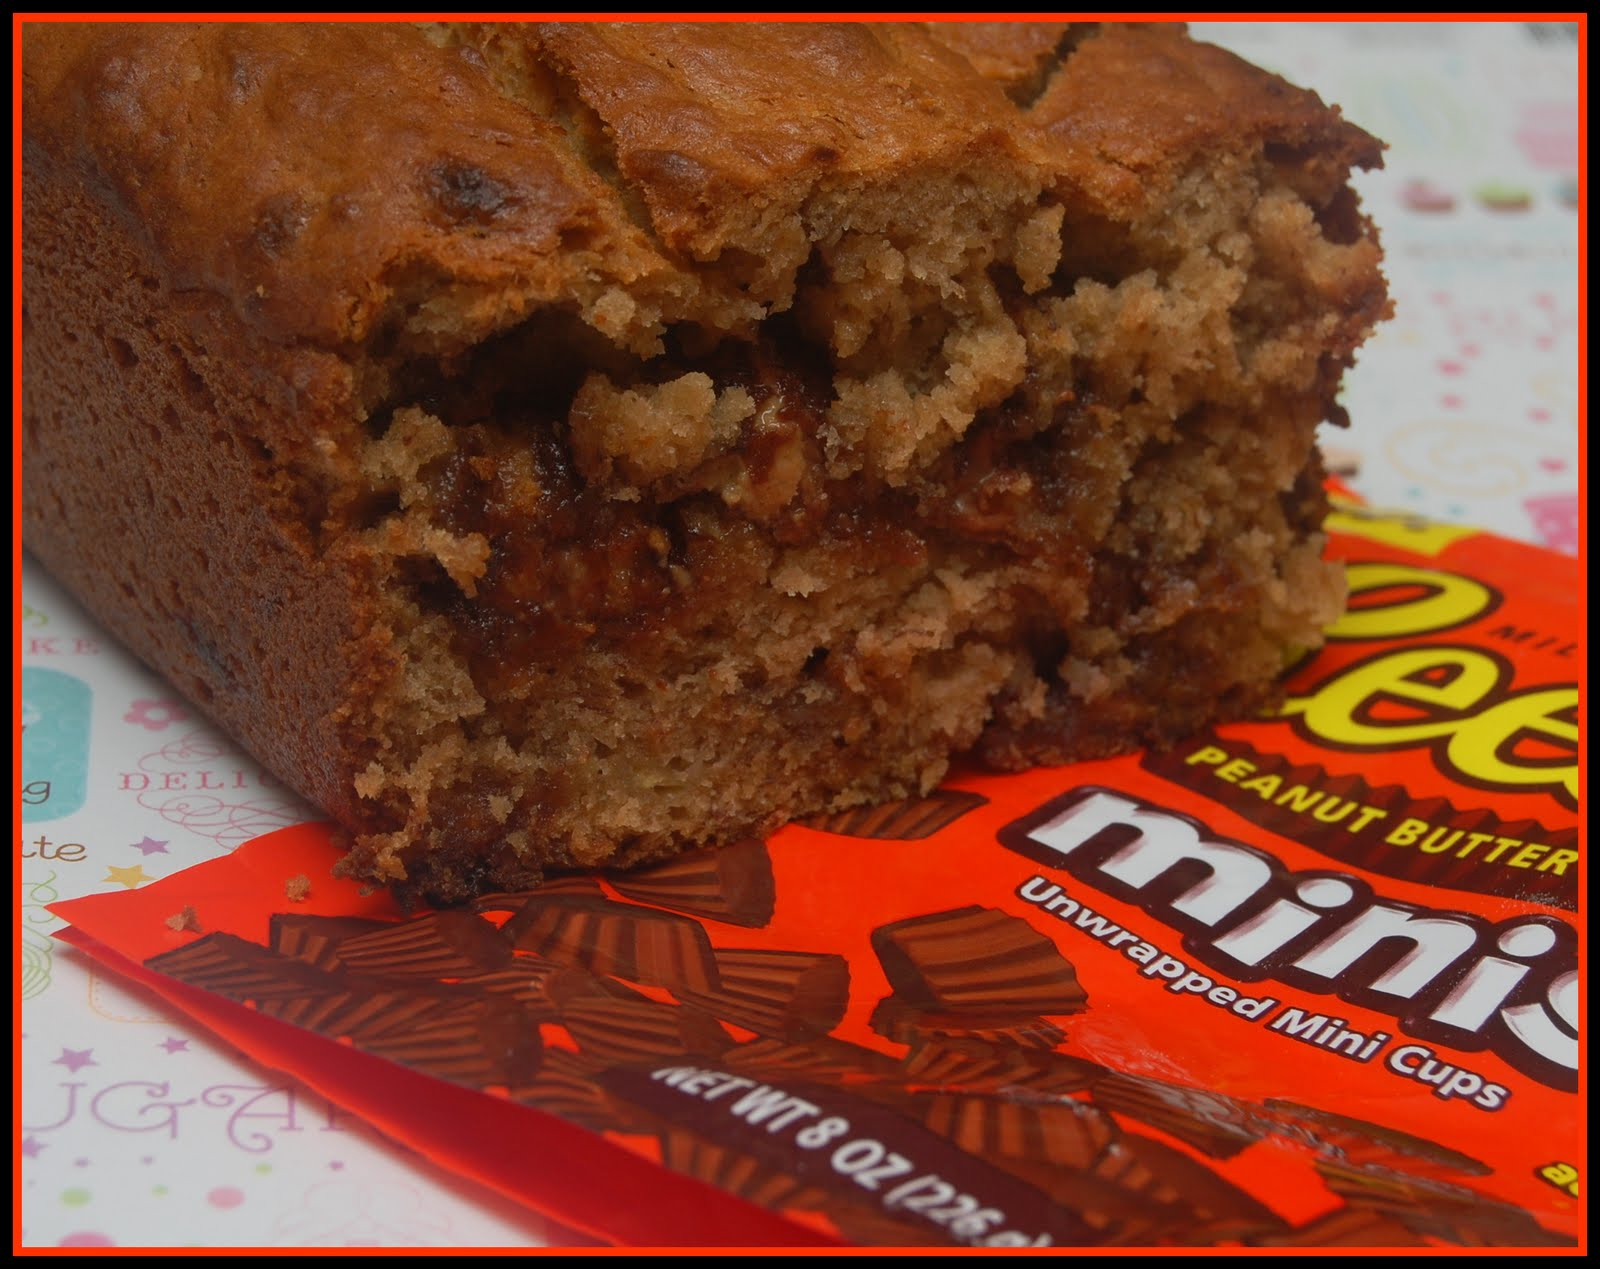 reese s peanut butter cup banana bread should be illegal best banana ...